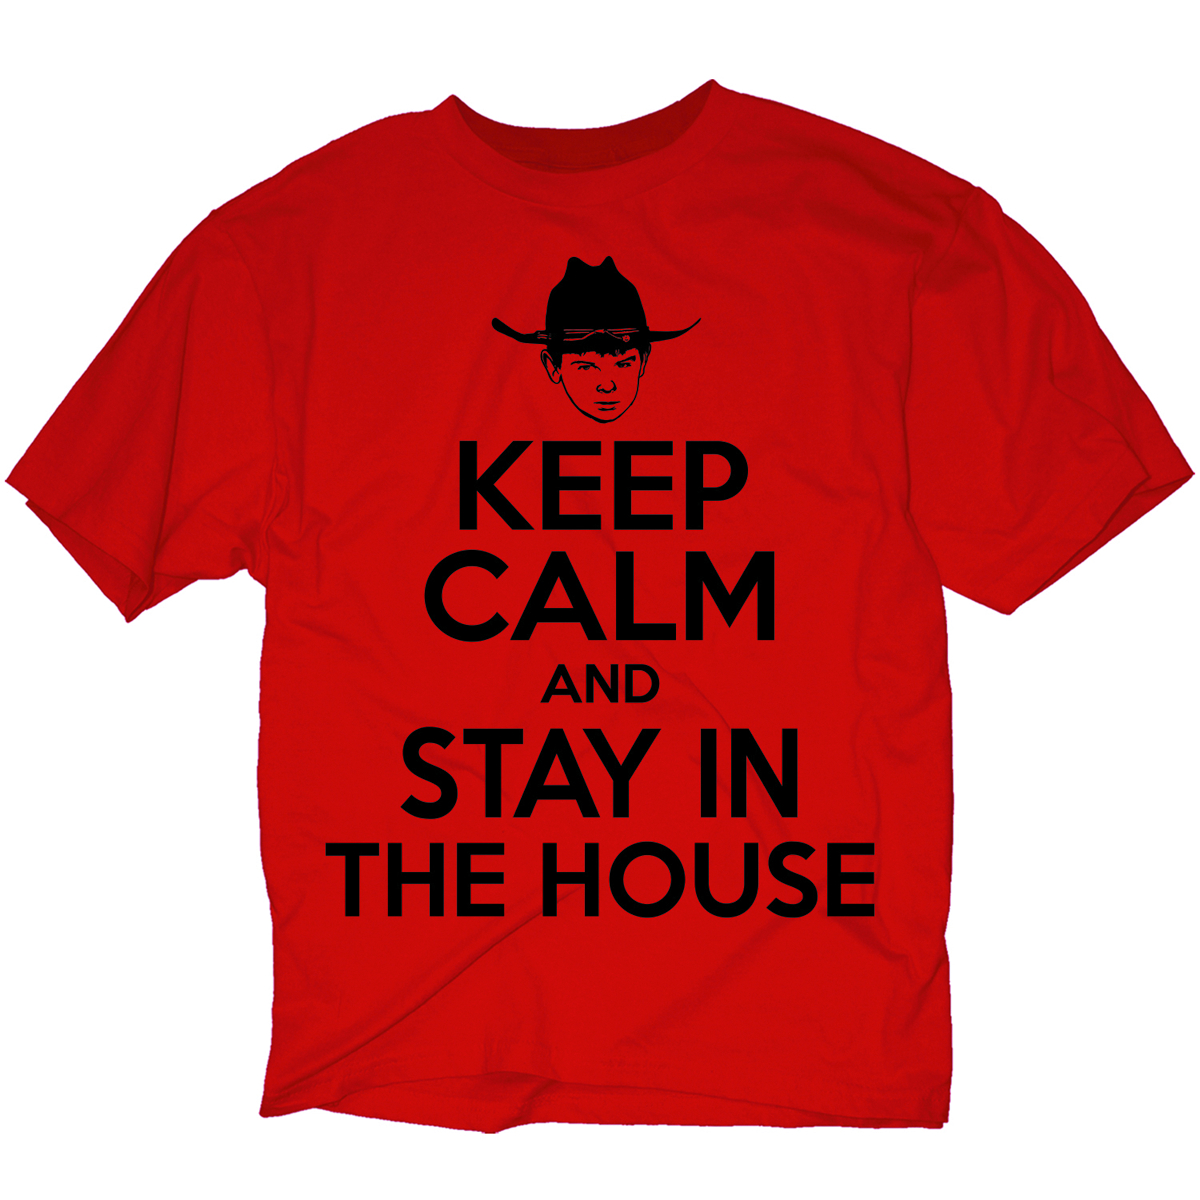 WALKING DEAD KEEP CALM STAY IN THE HOUSE PX RED T/S LG